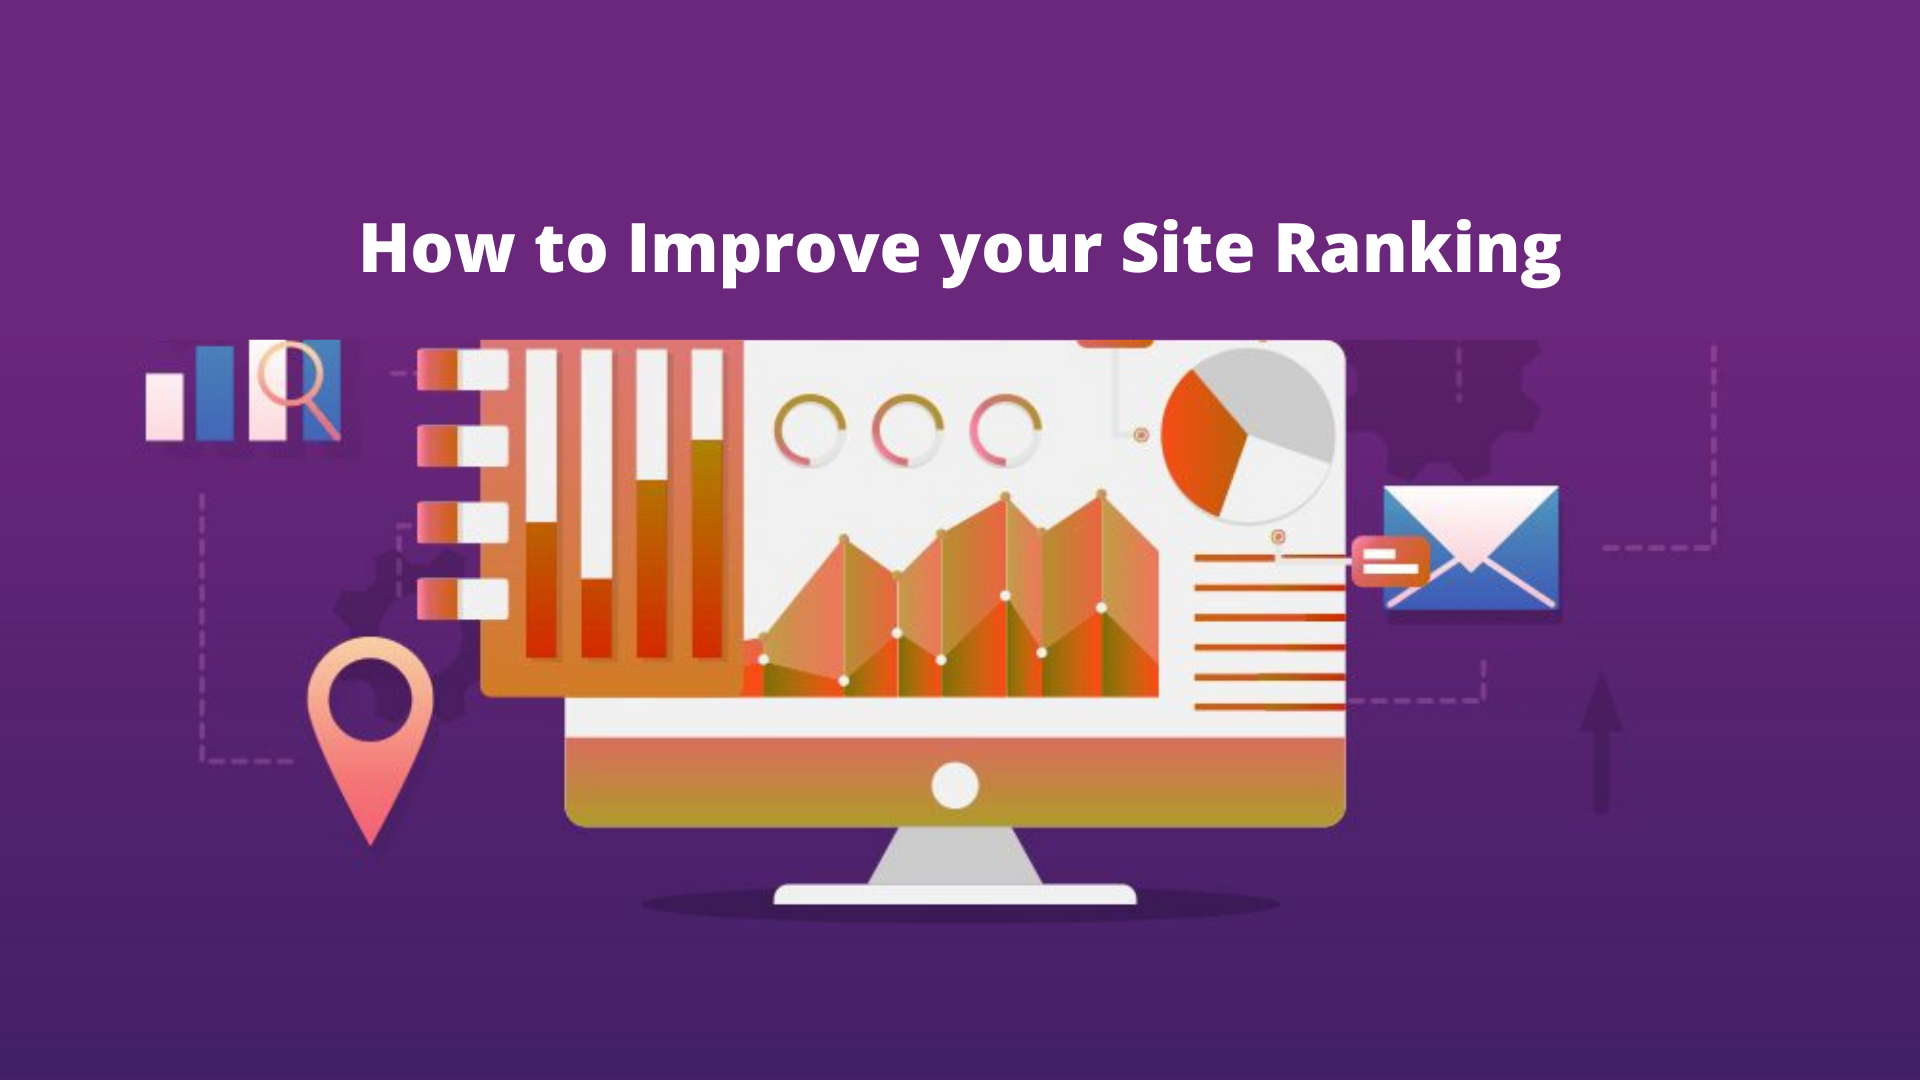 How to Improve your Site Ranking